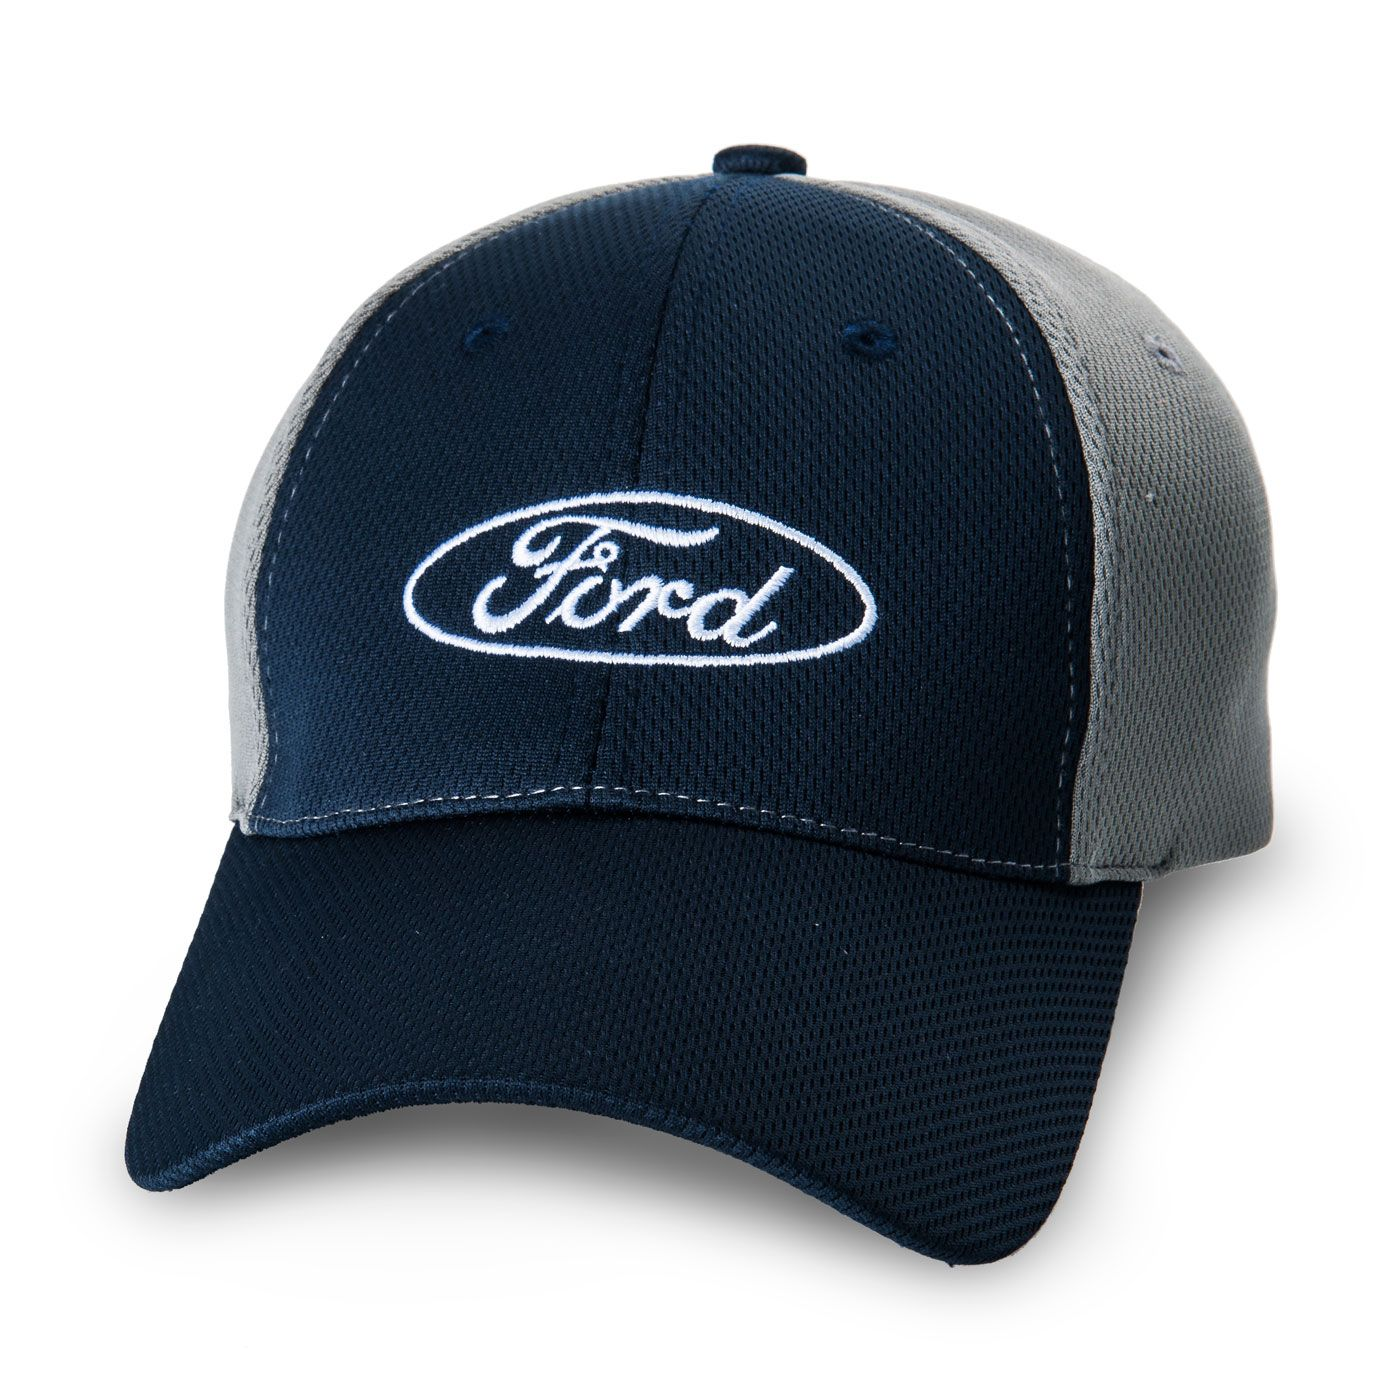 8120171210c The Ford Merchandise Store